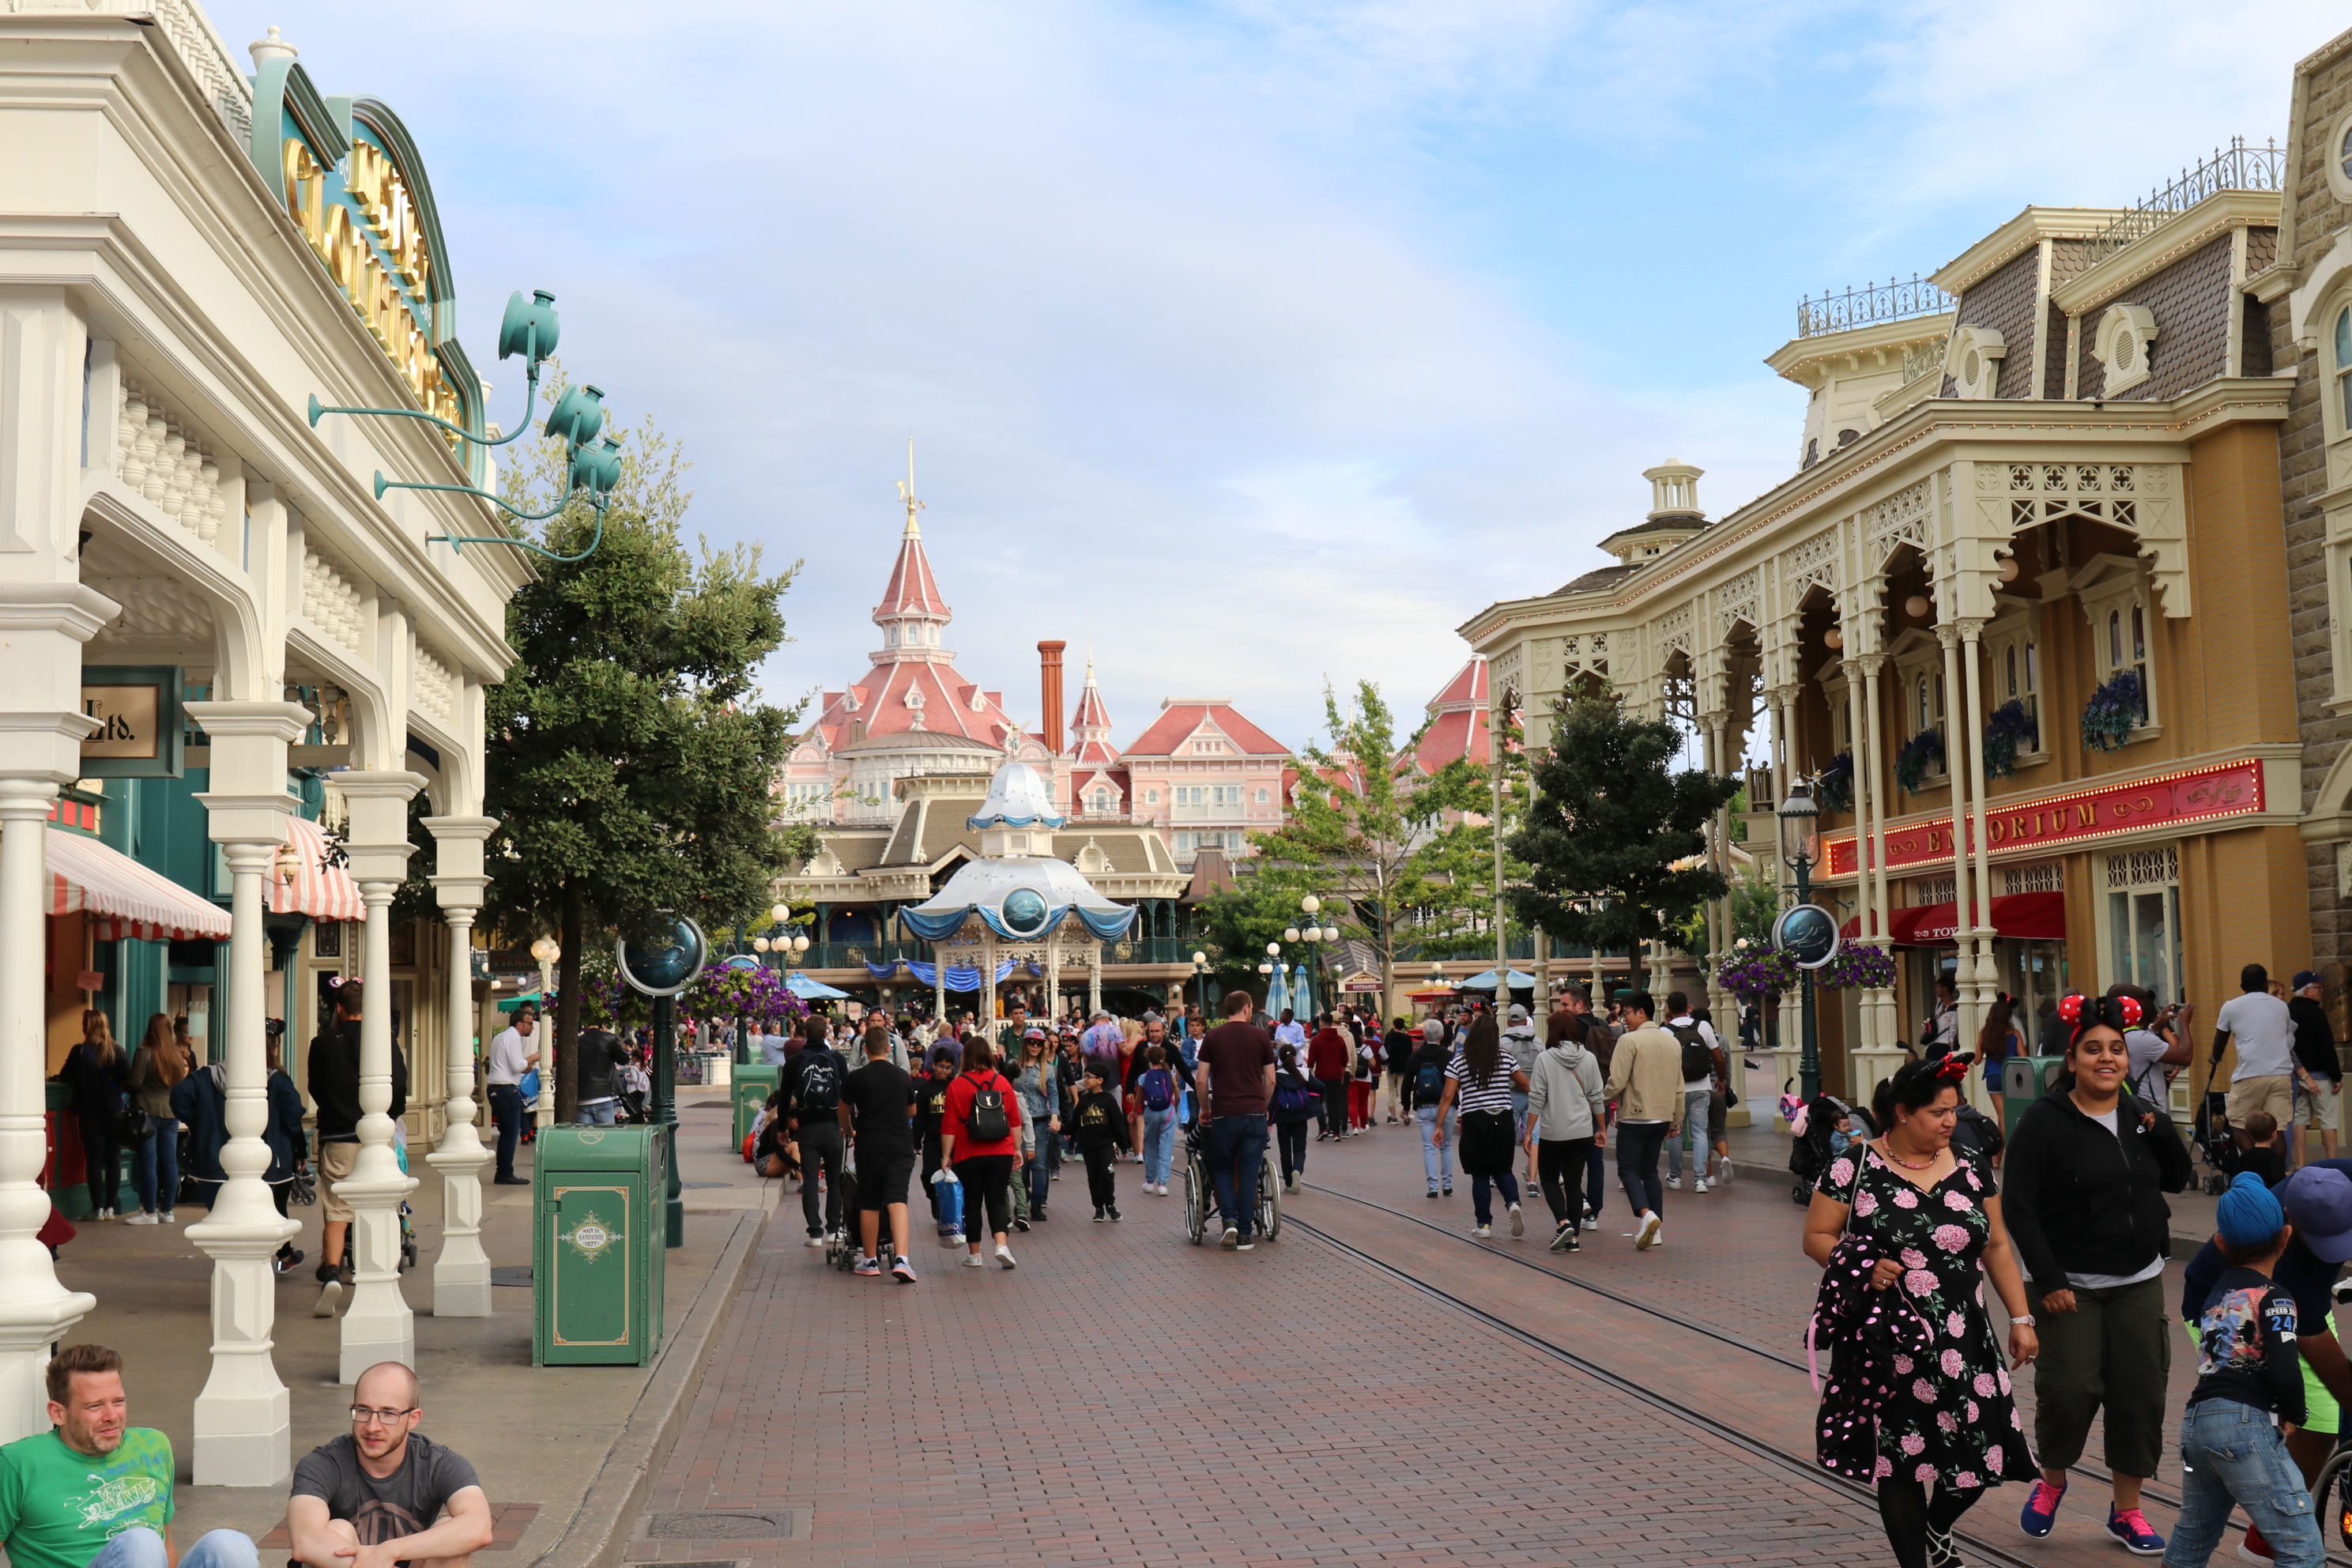 Low crowds on Main Street USA